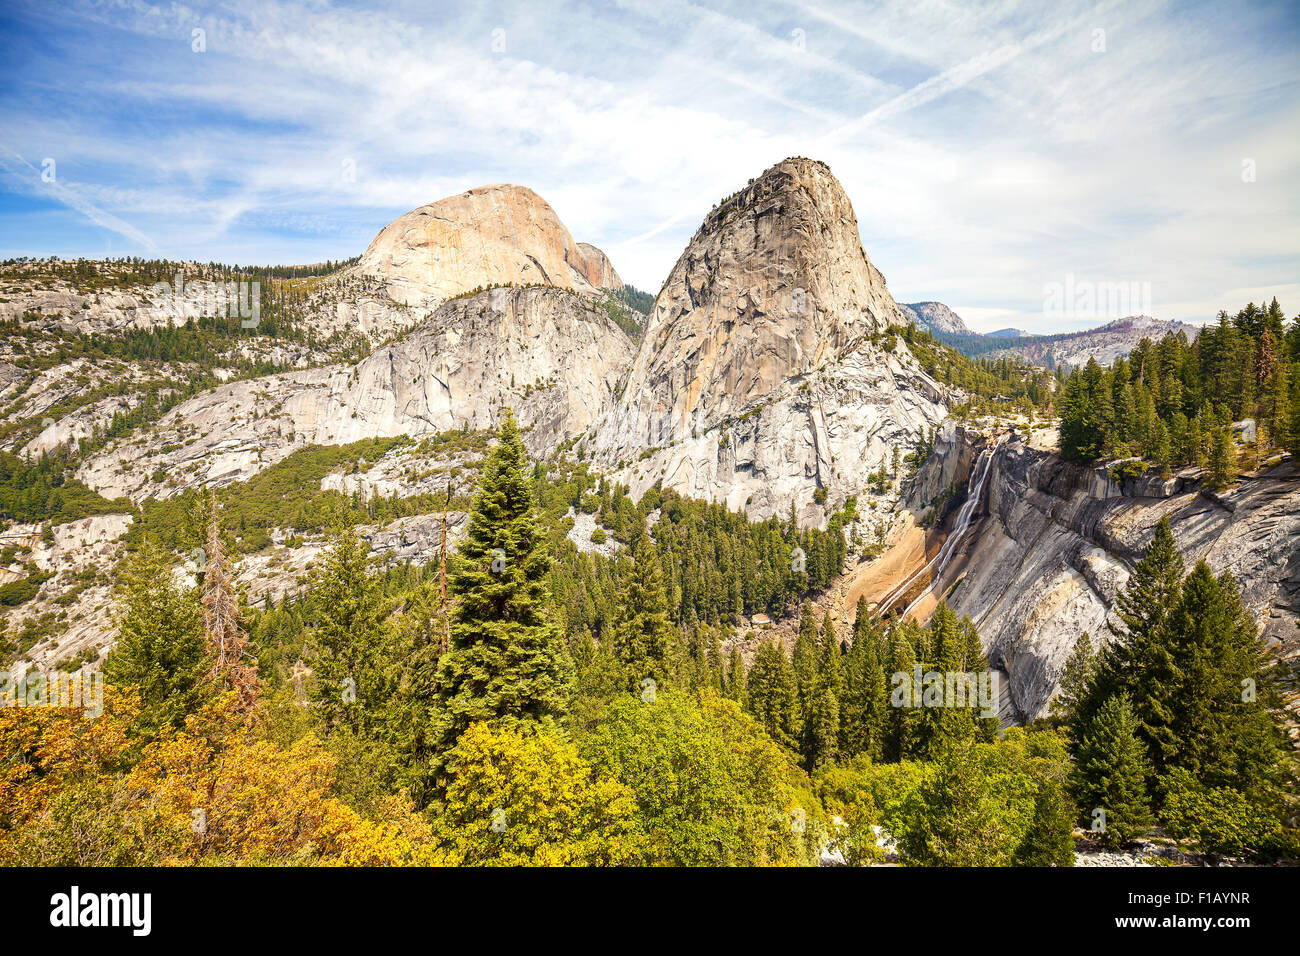 Nevada fall in Yosemite National Park, California, USA. Photo Stock